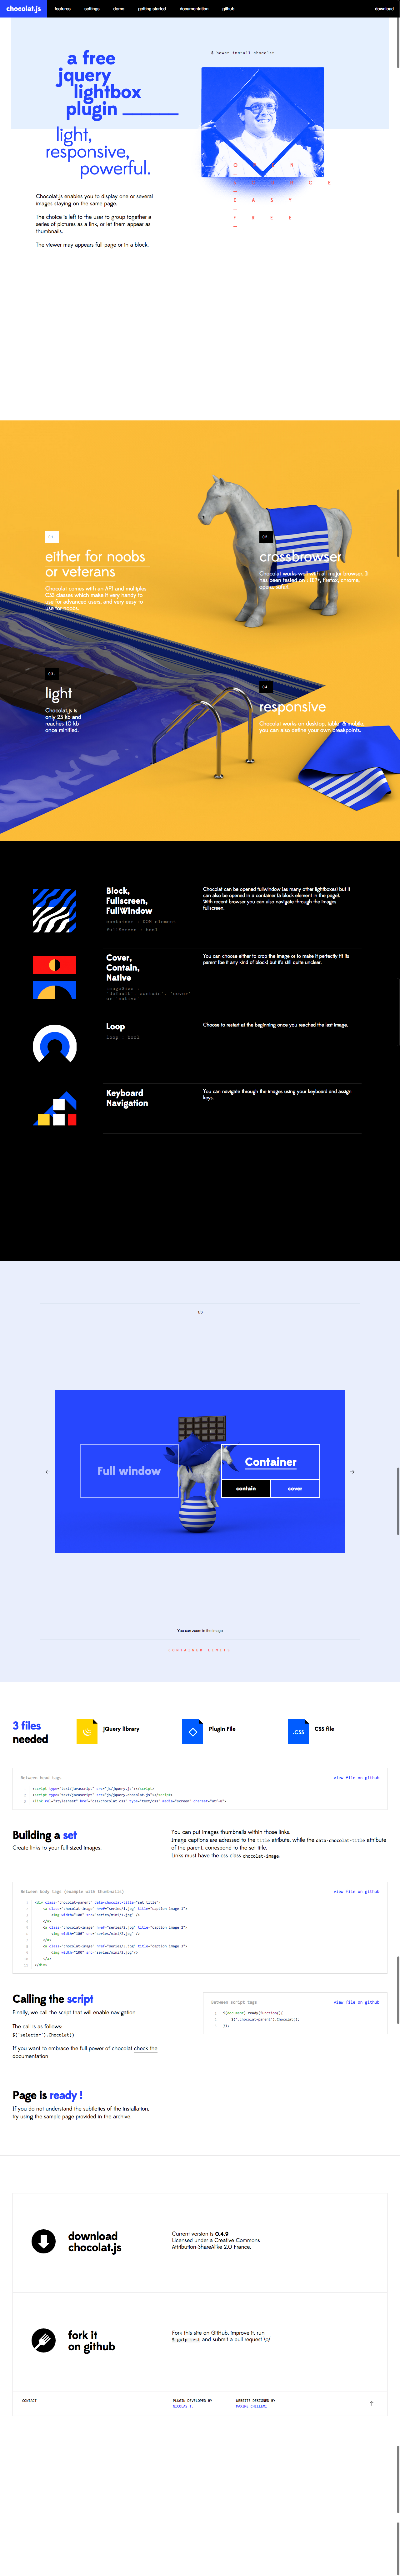 Chocolate.js – Love the design of the site for this Lightbox / Carousel.